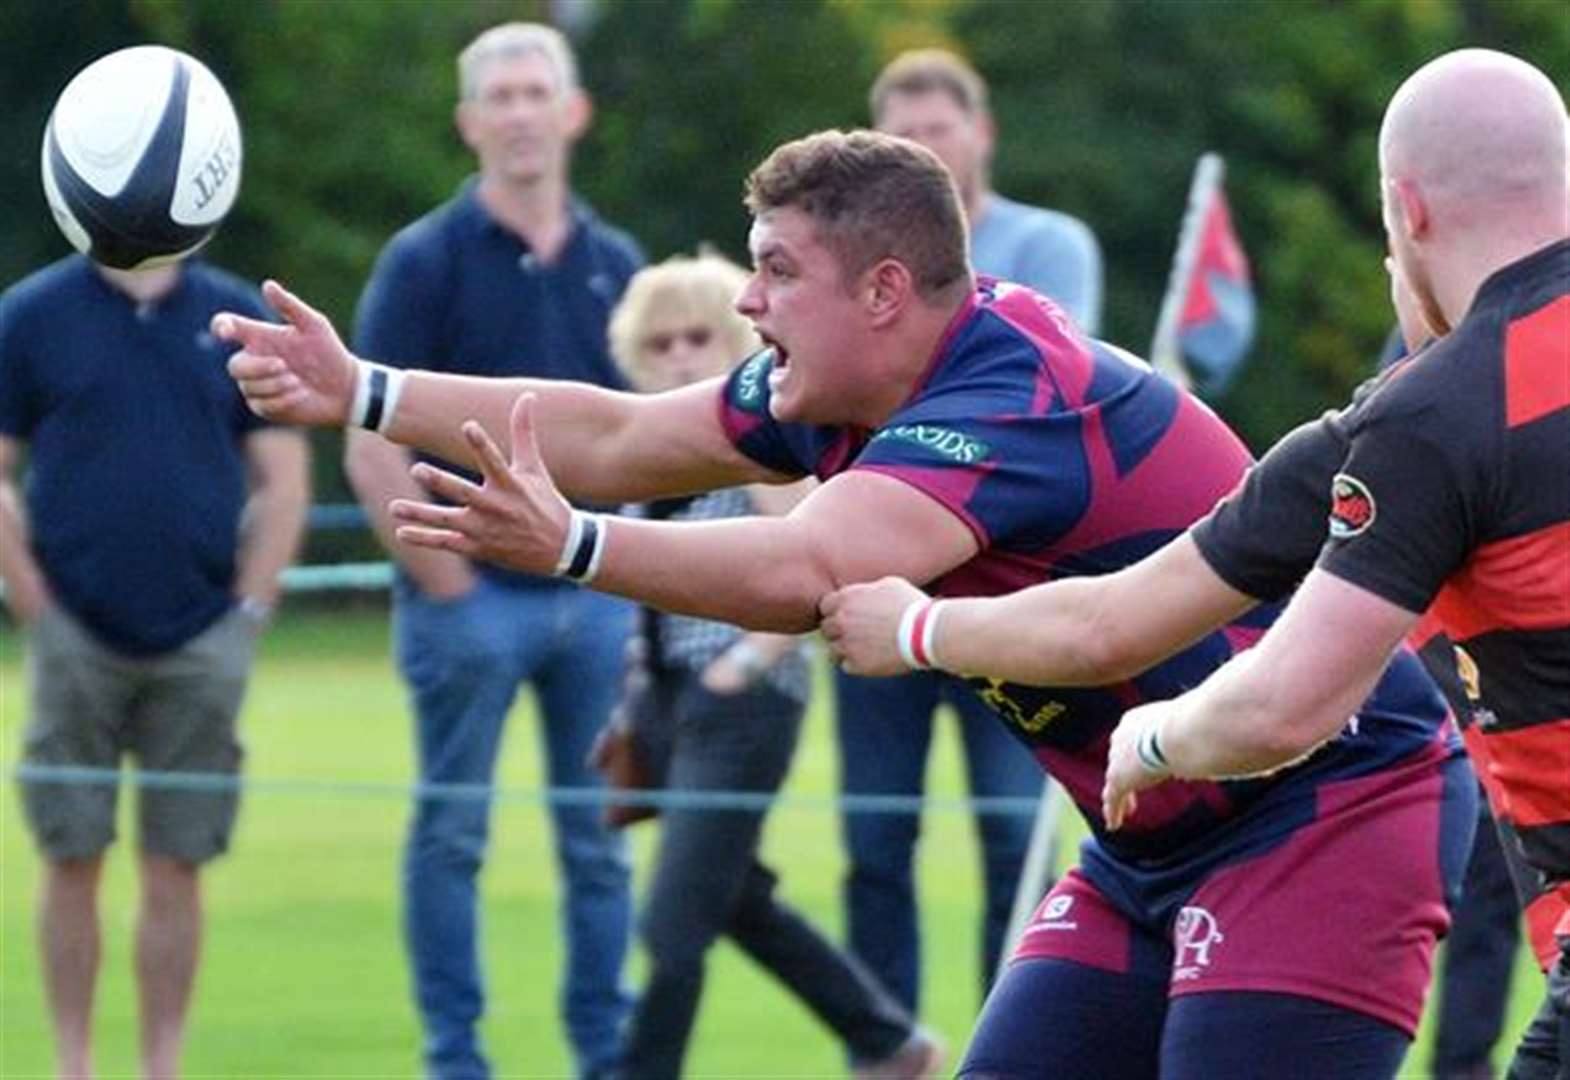 RUGBY UNION: Spalding aim for bonus at home